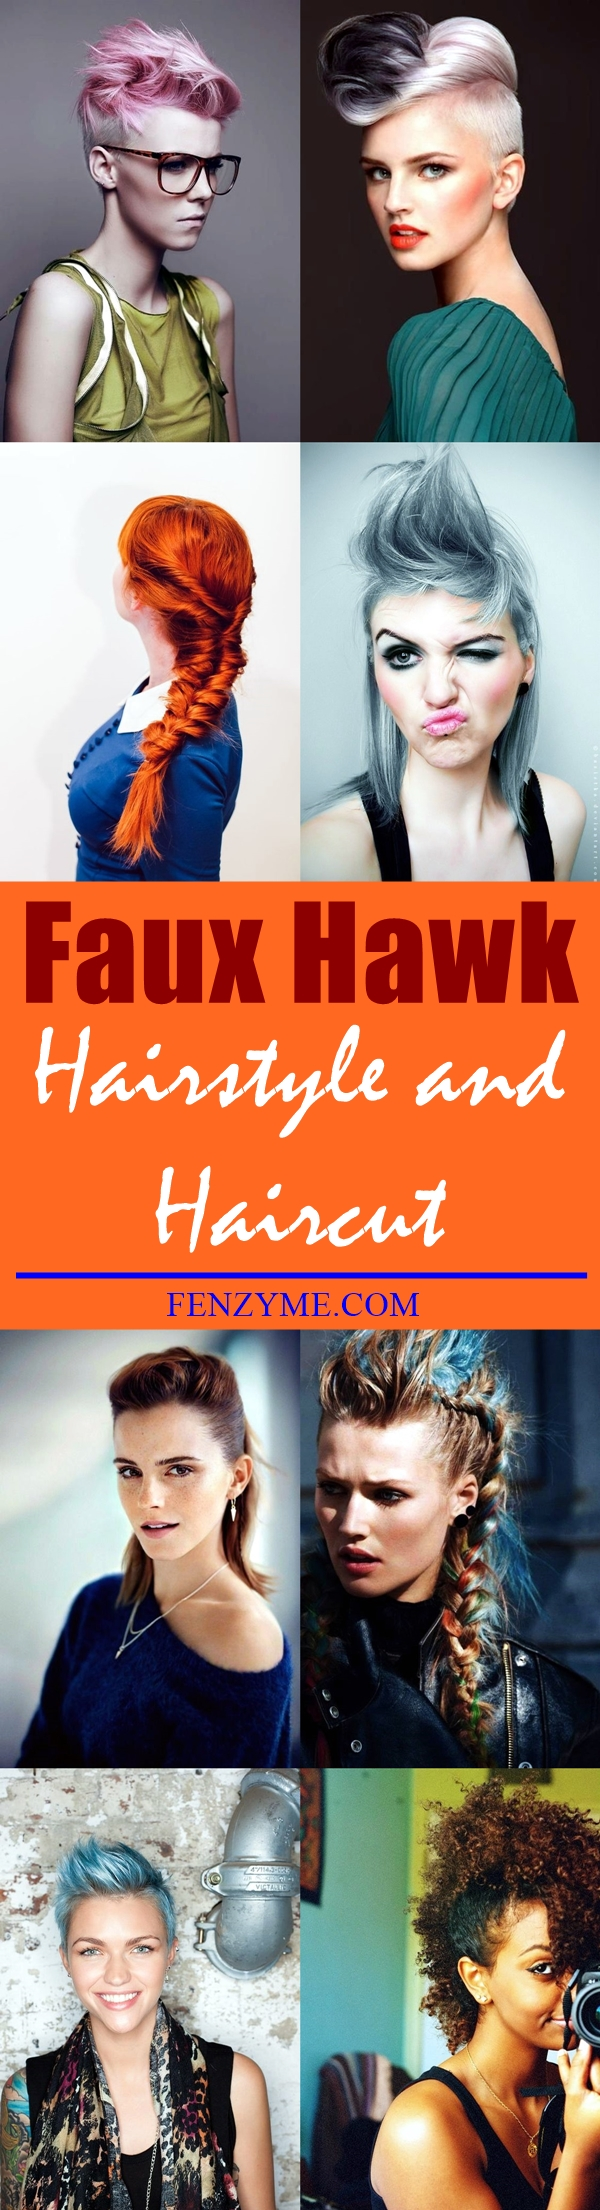 faux-hawk-hairstyle-and-haircut-7-tile